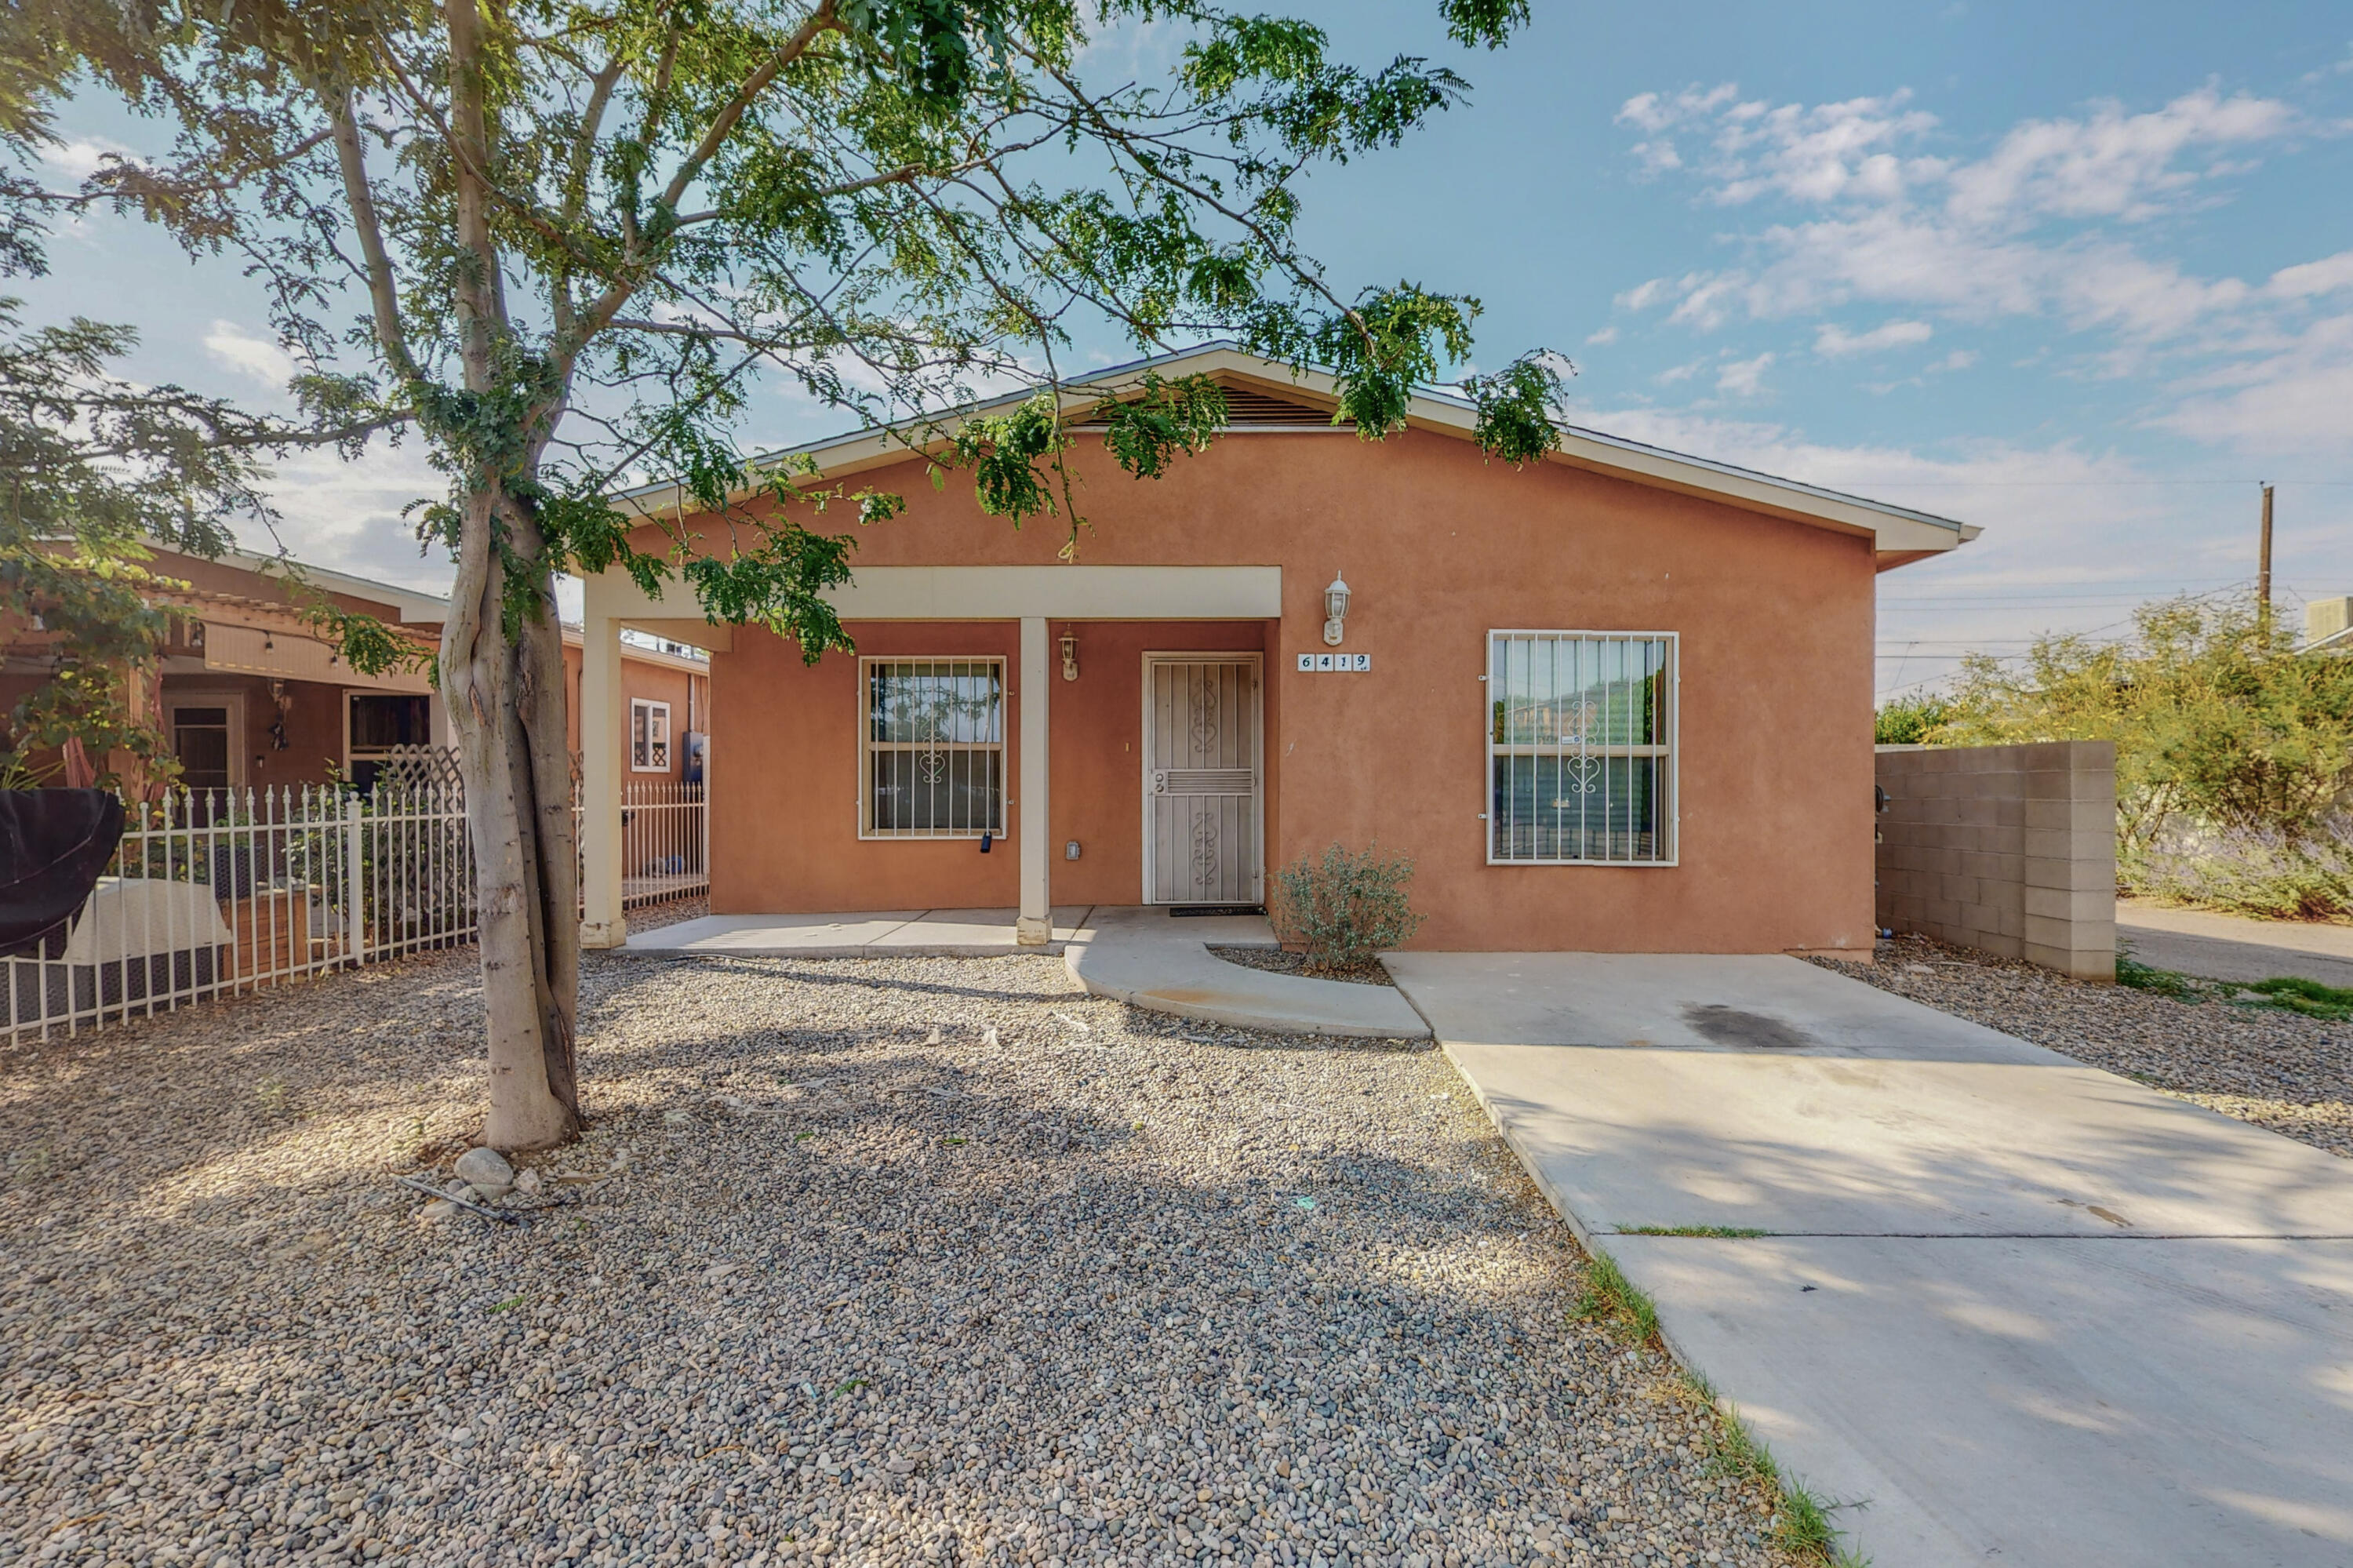 Move-In Ready! This home had 4 bedrooms, 2 full baths, 2 living areas, updated kitchen, flooring, paint, carpet and more. This is a definite must see!